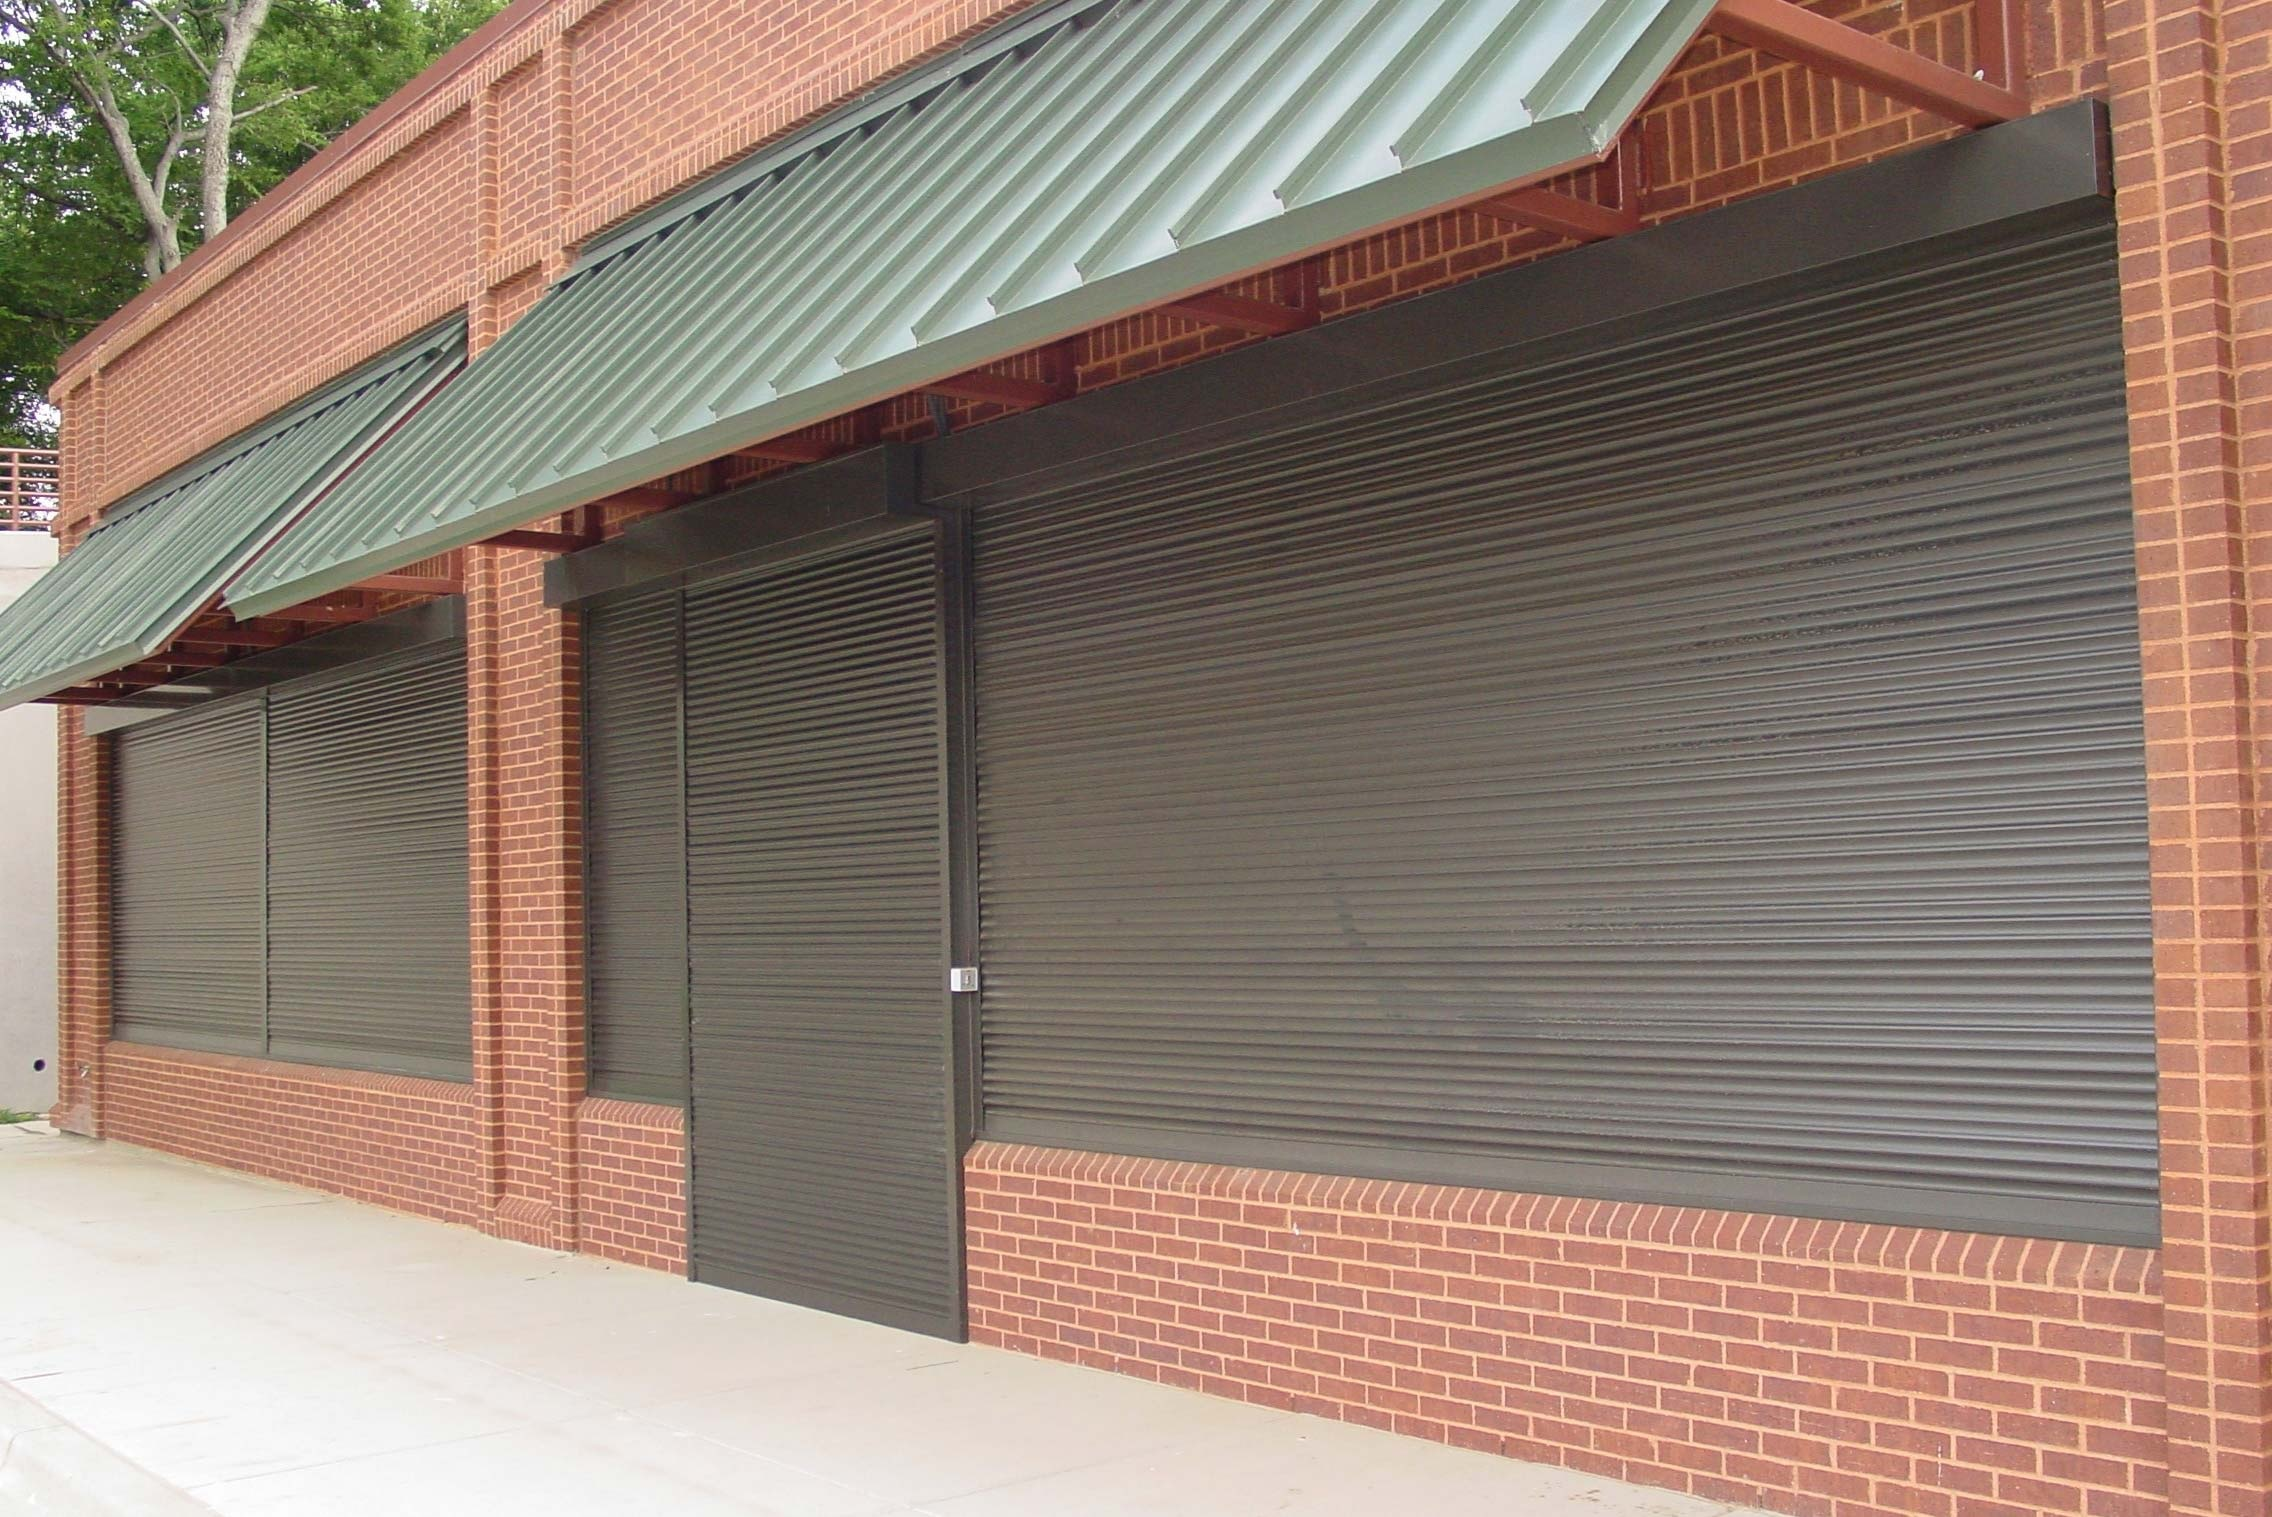 Store Exterior with Rolling Security Shutters.